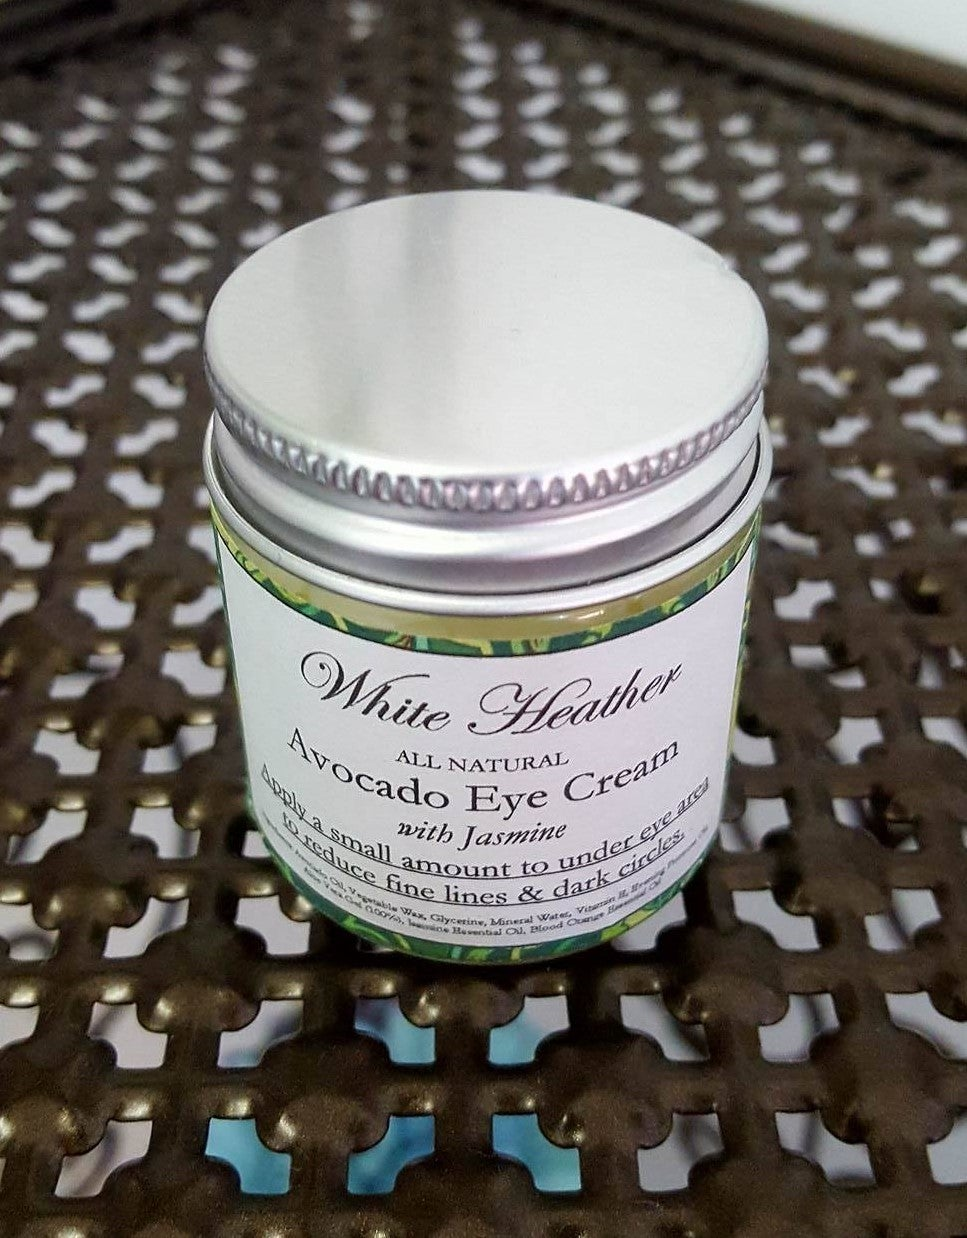 Image of Avocado Eye Cream with Jasmine